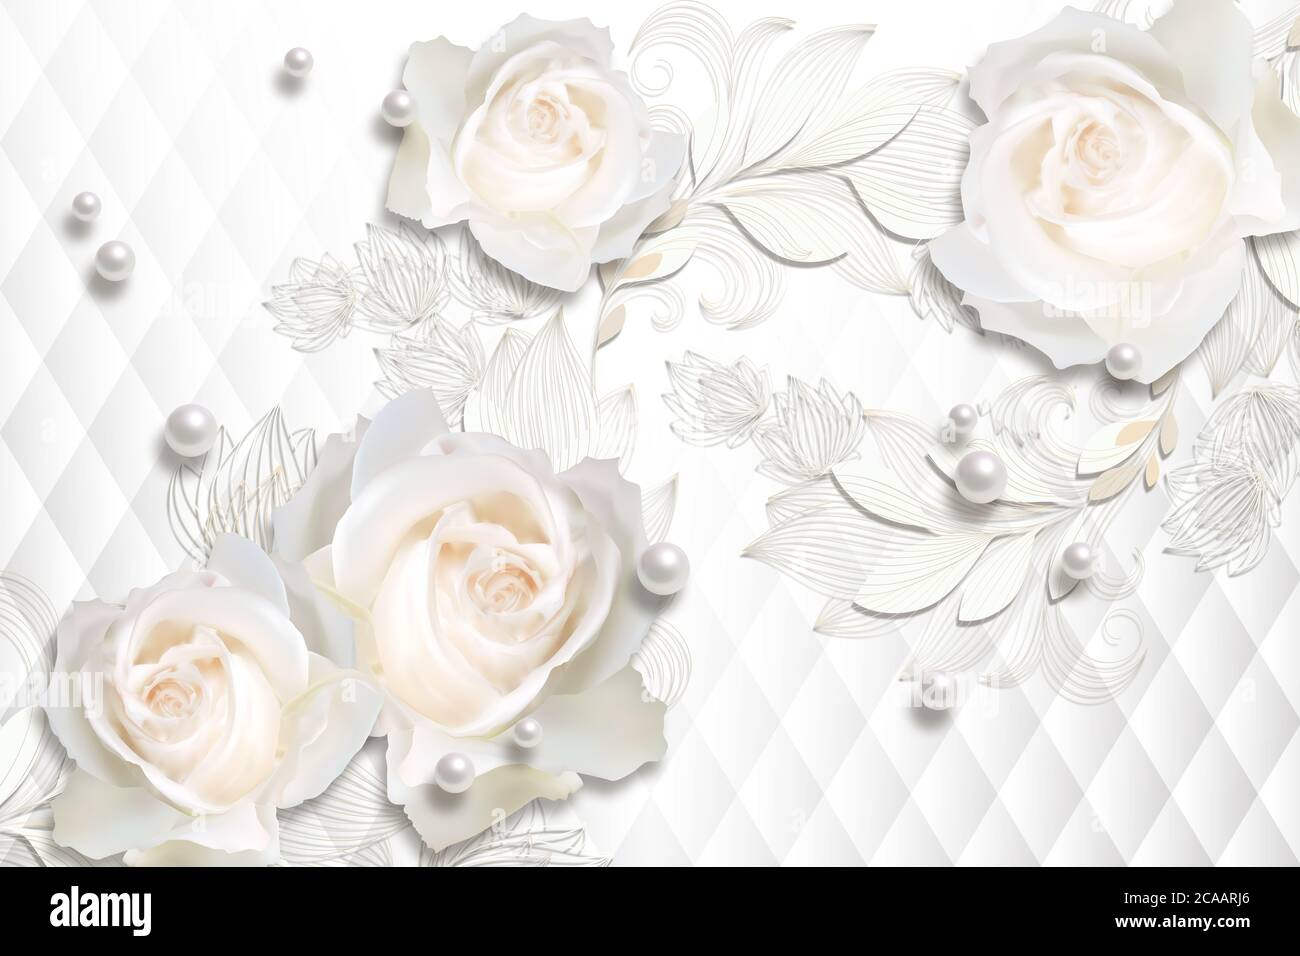 White Roses Pearls On White Abstract Background 3d Wallpaper Texture Celebration Party Design Background Stock Photo Alamy